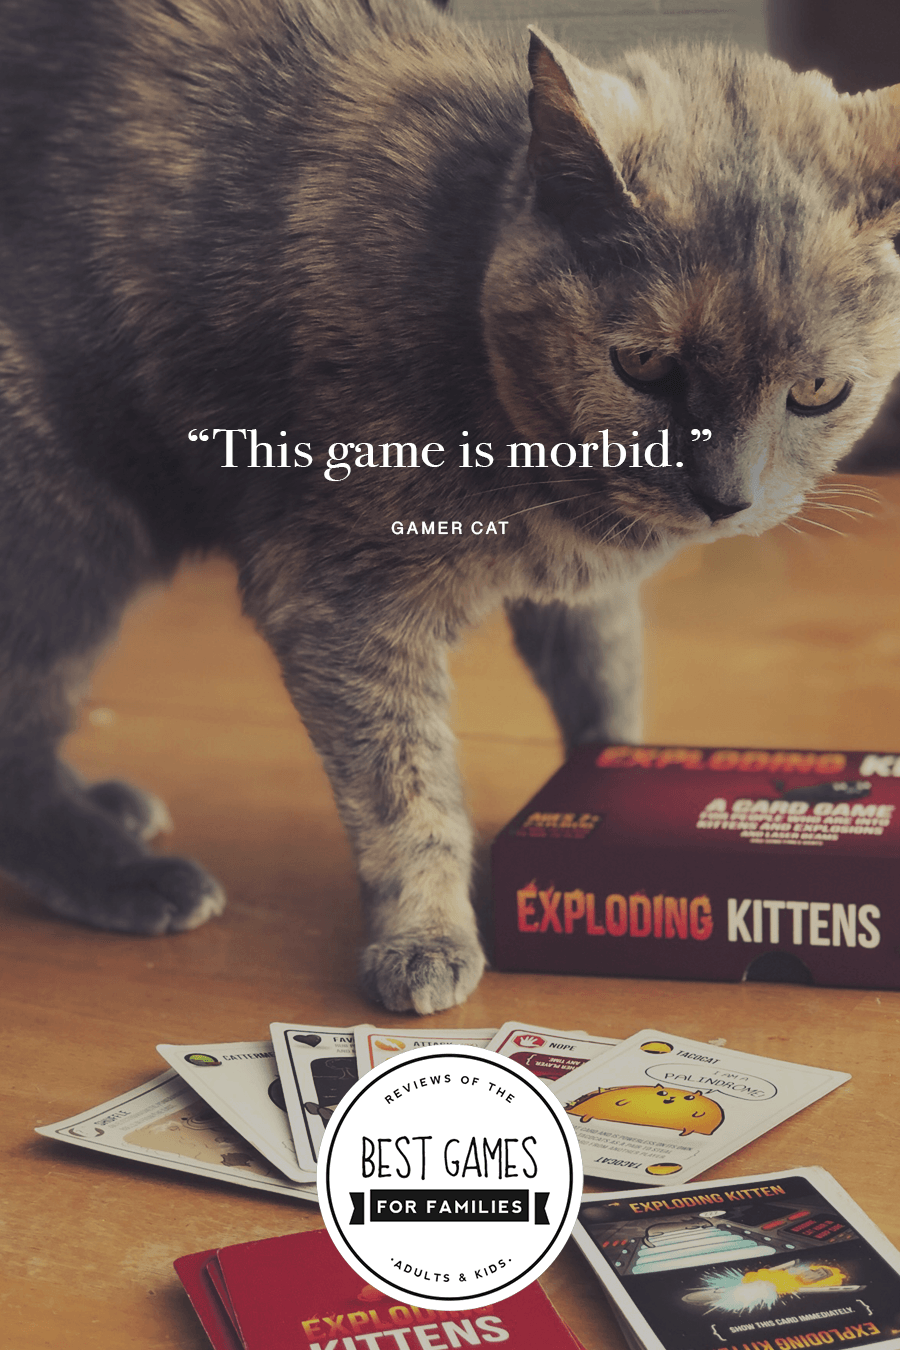 Exploding Kittens Game Review - Love this hilarious, easy to learn, strategic card game. #familygames #explodingkittens #gamenight *Loving this family website and board game suggestions